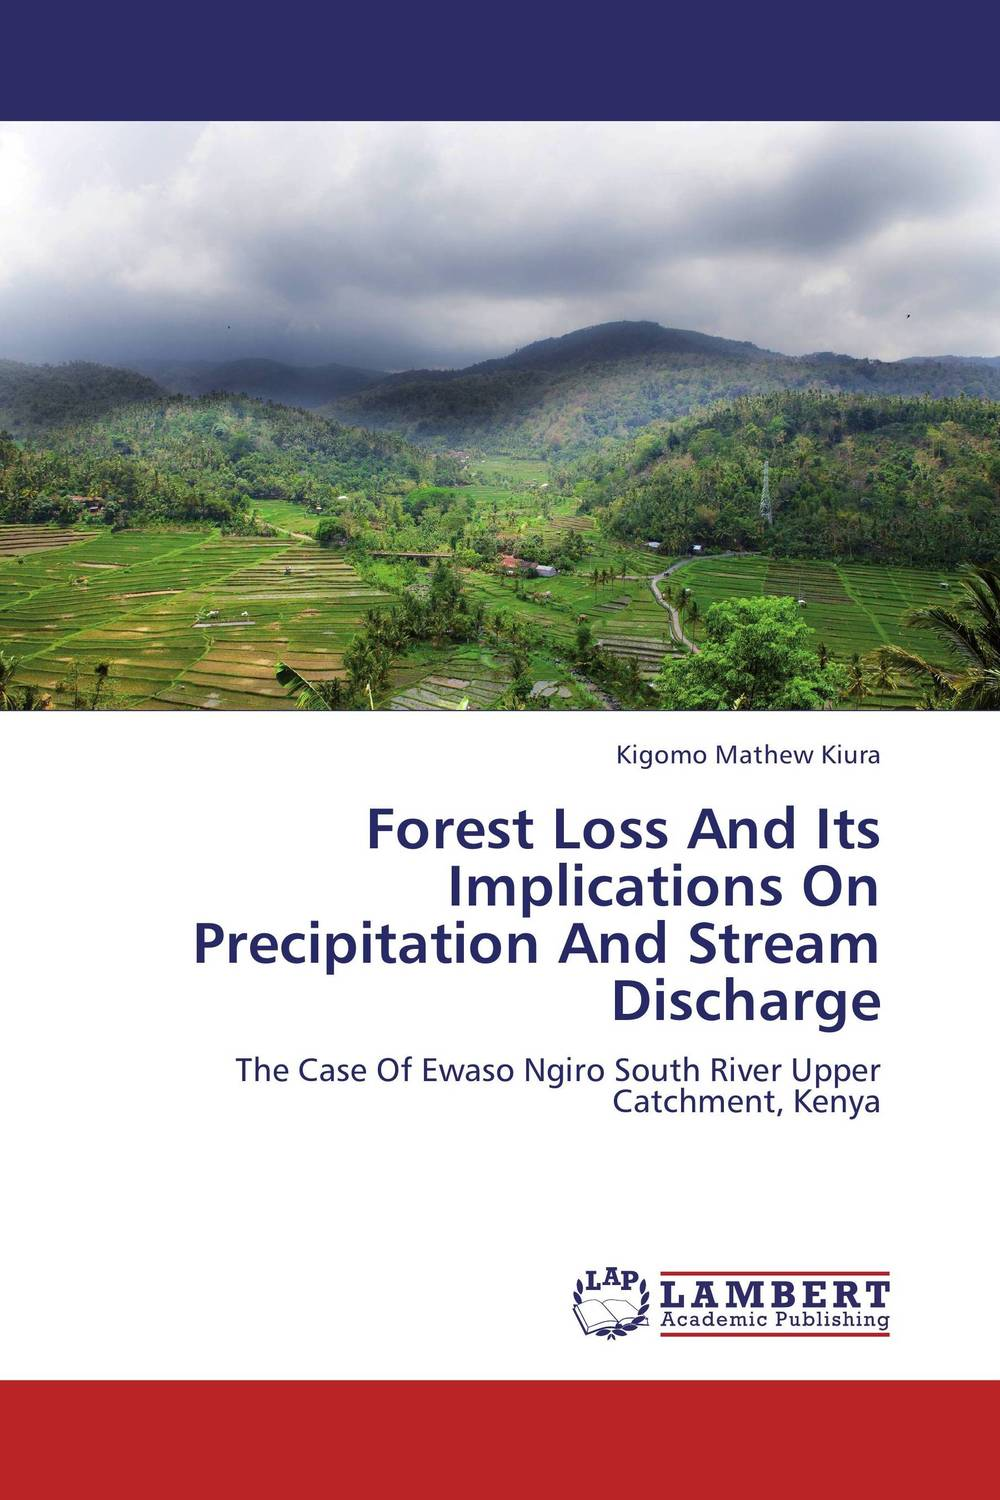 Forest Loss And Its Implications On Precipitation And Stream Discharge